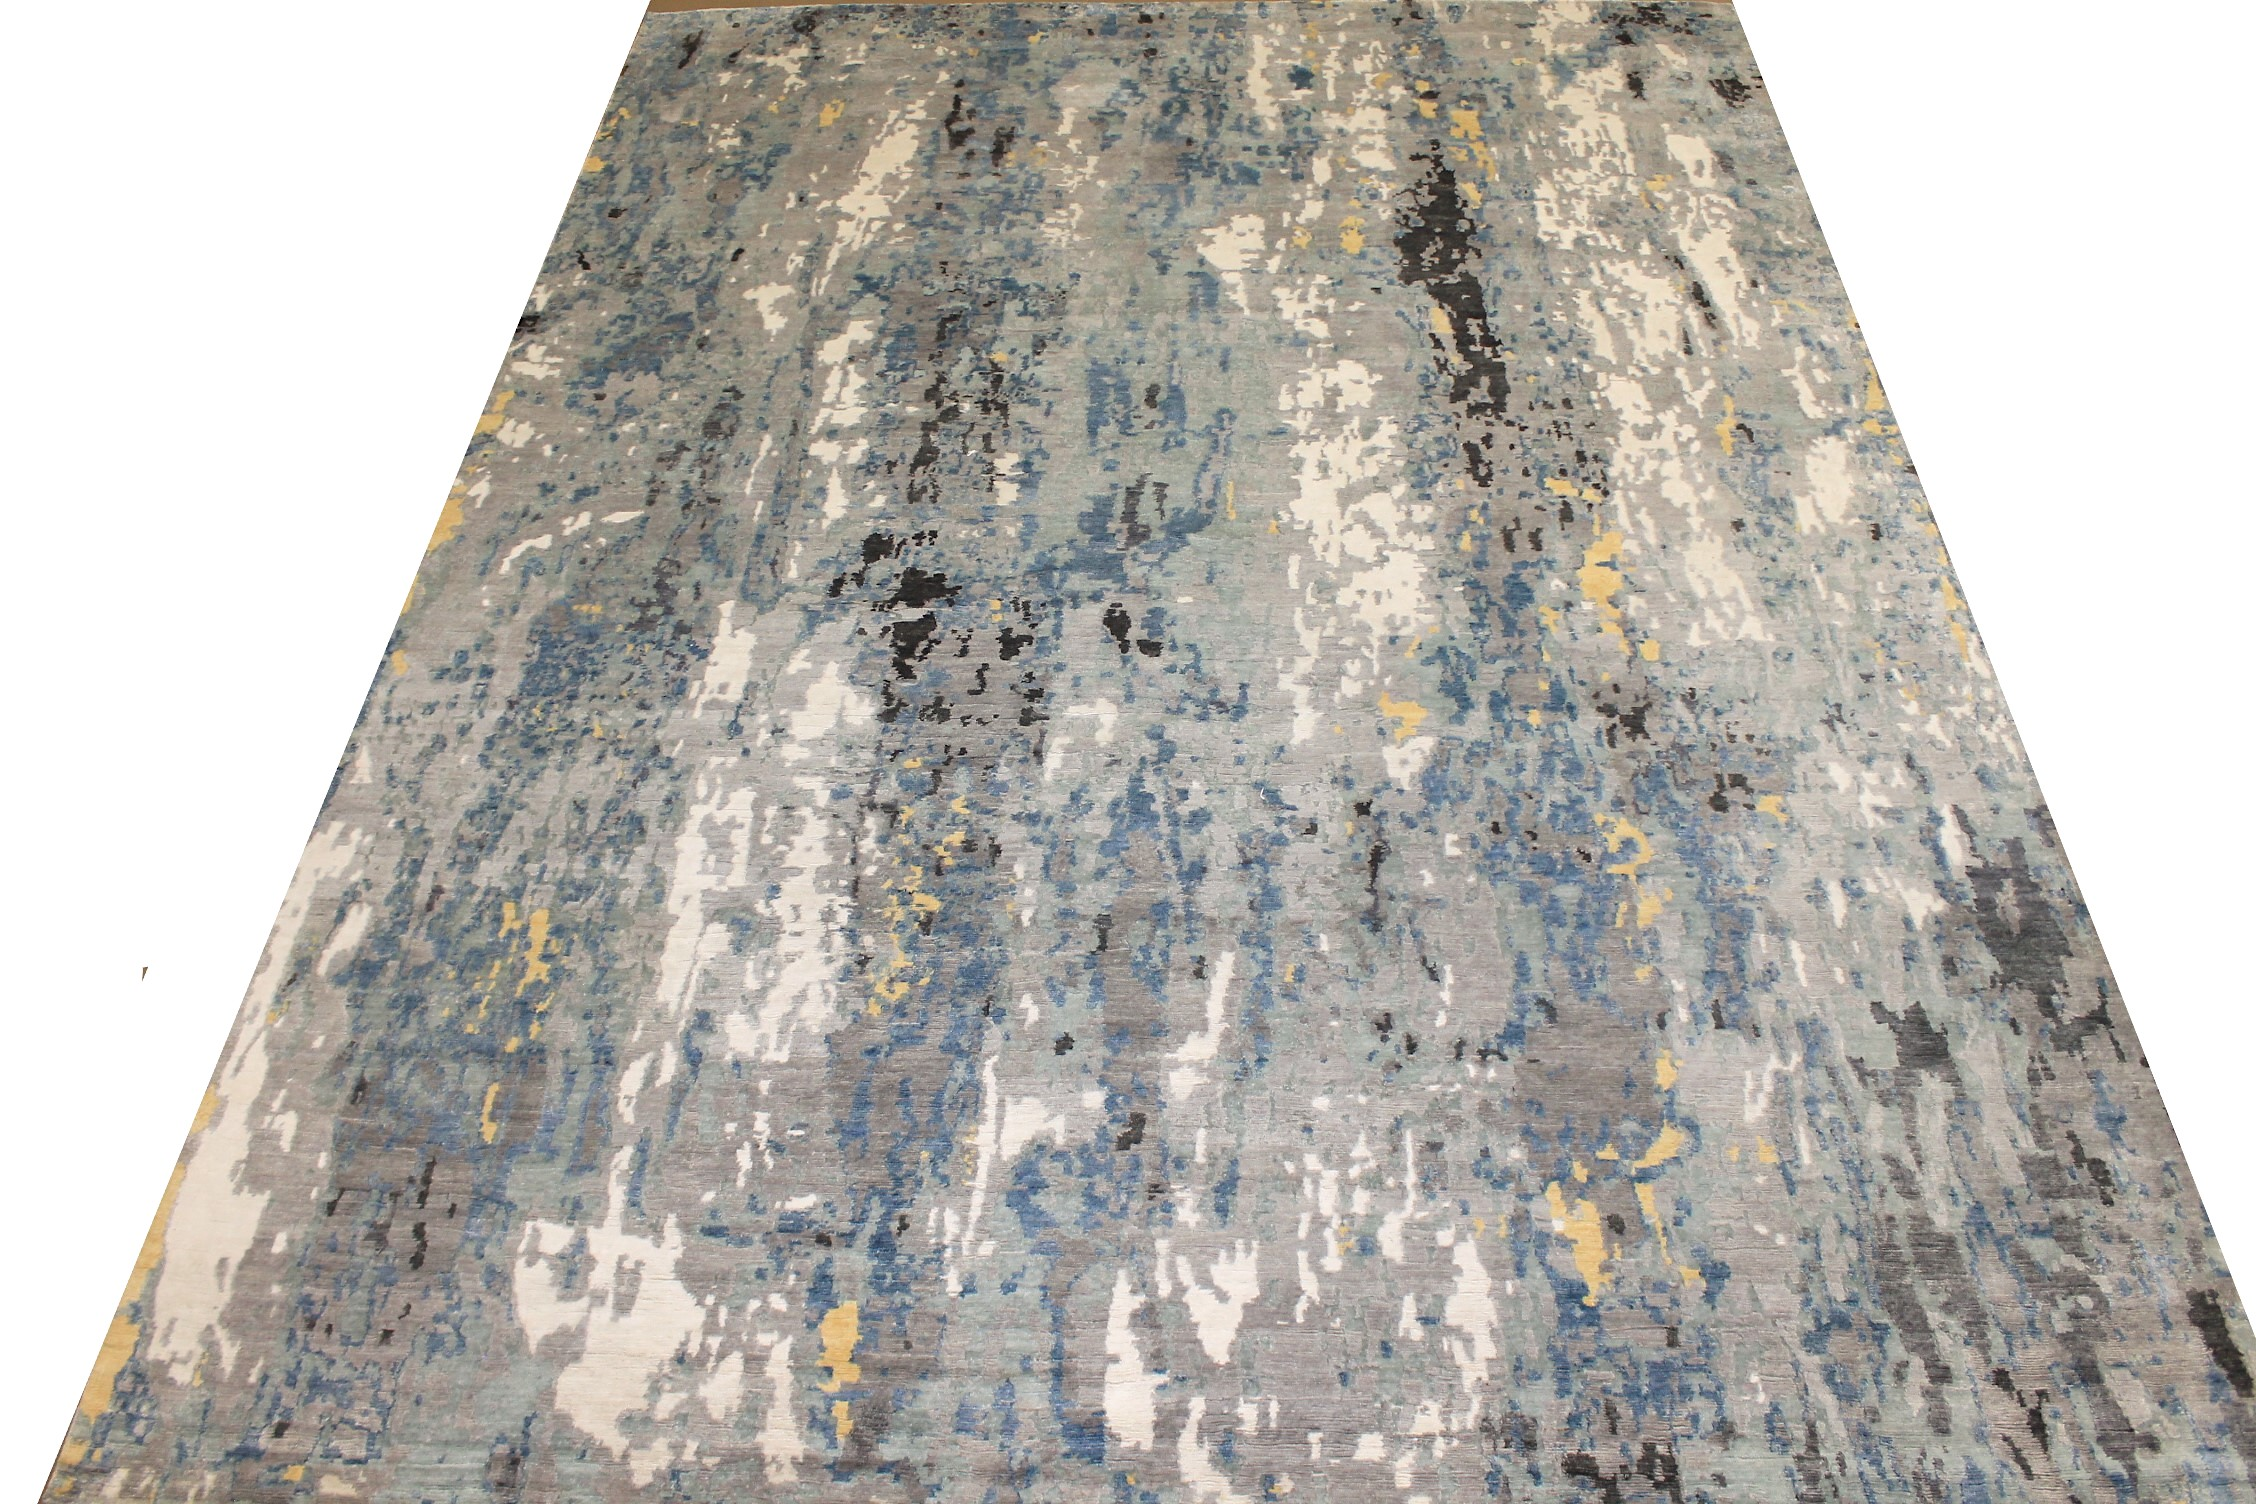 10x14 Modern Hand Knotted Wool & Bamboo Silk Area Rug - MR024649